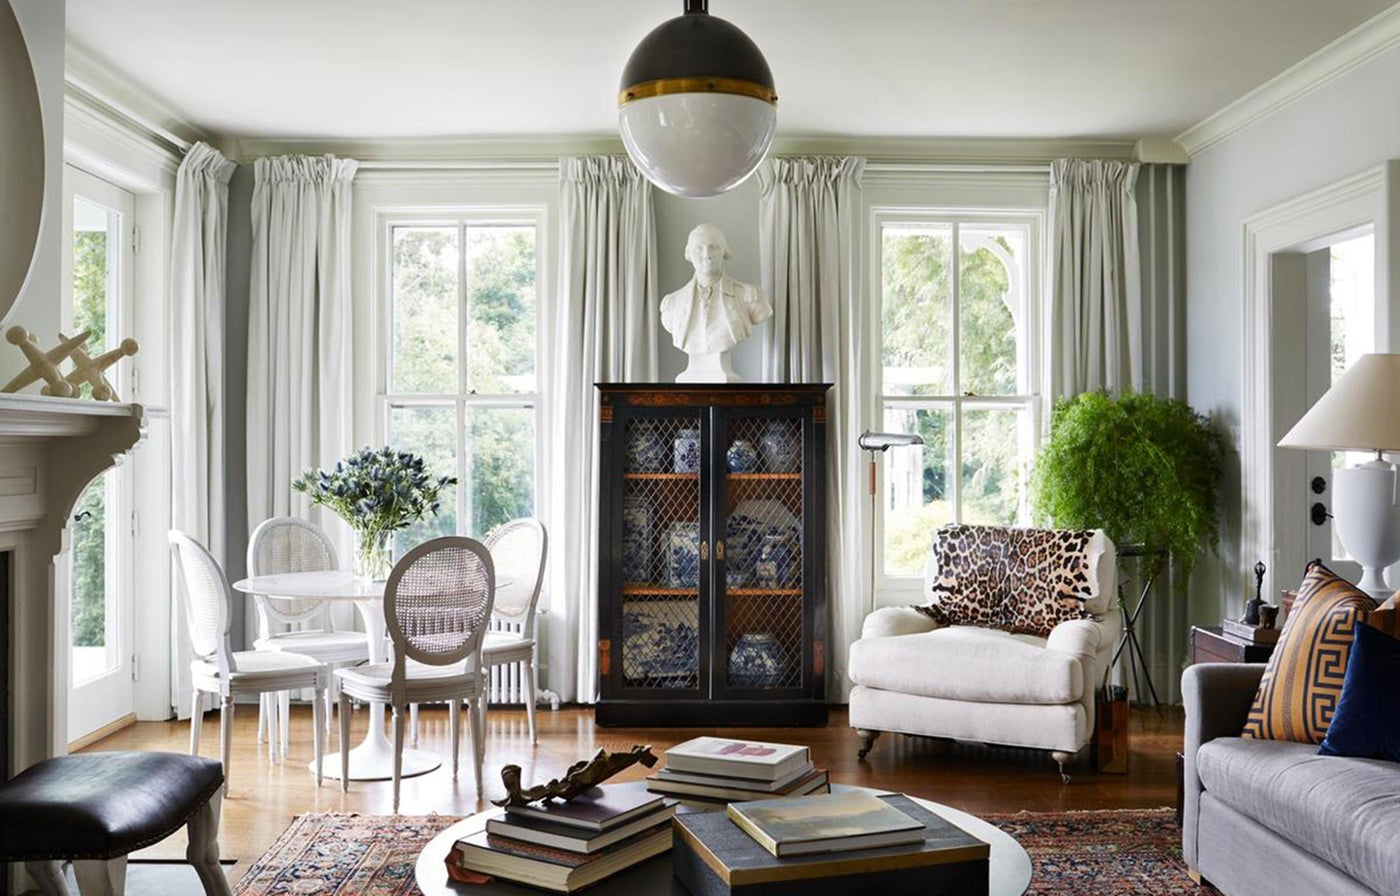 Hudson Valley Style / An eclectic combination of antiques and interesting objects enliven this lovely white parlor. A neoclassic bookshelf exhibits a collection of blue and white china.